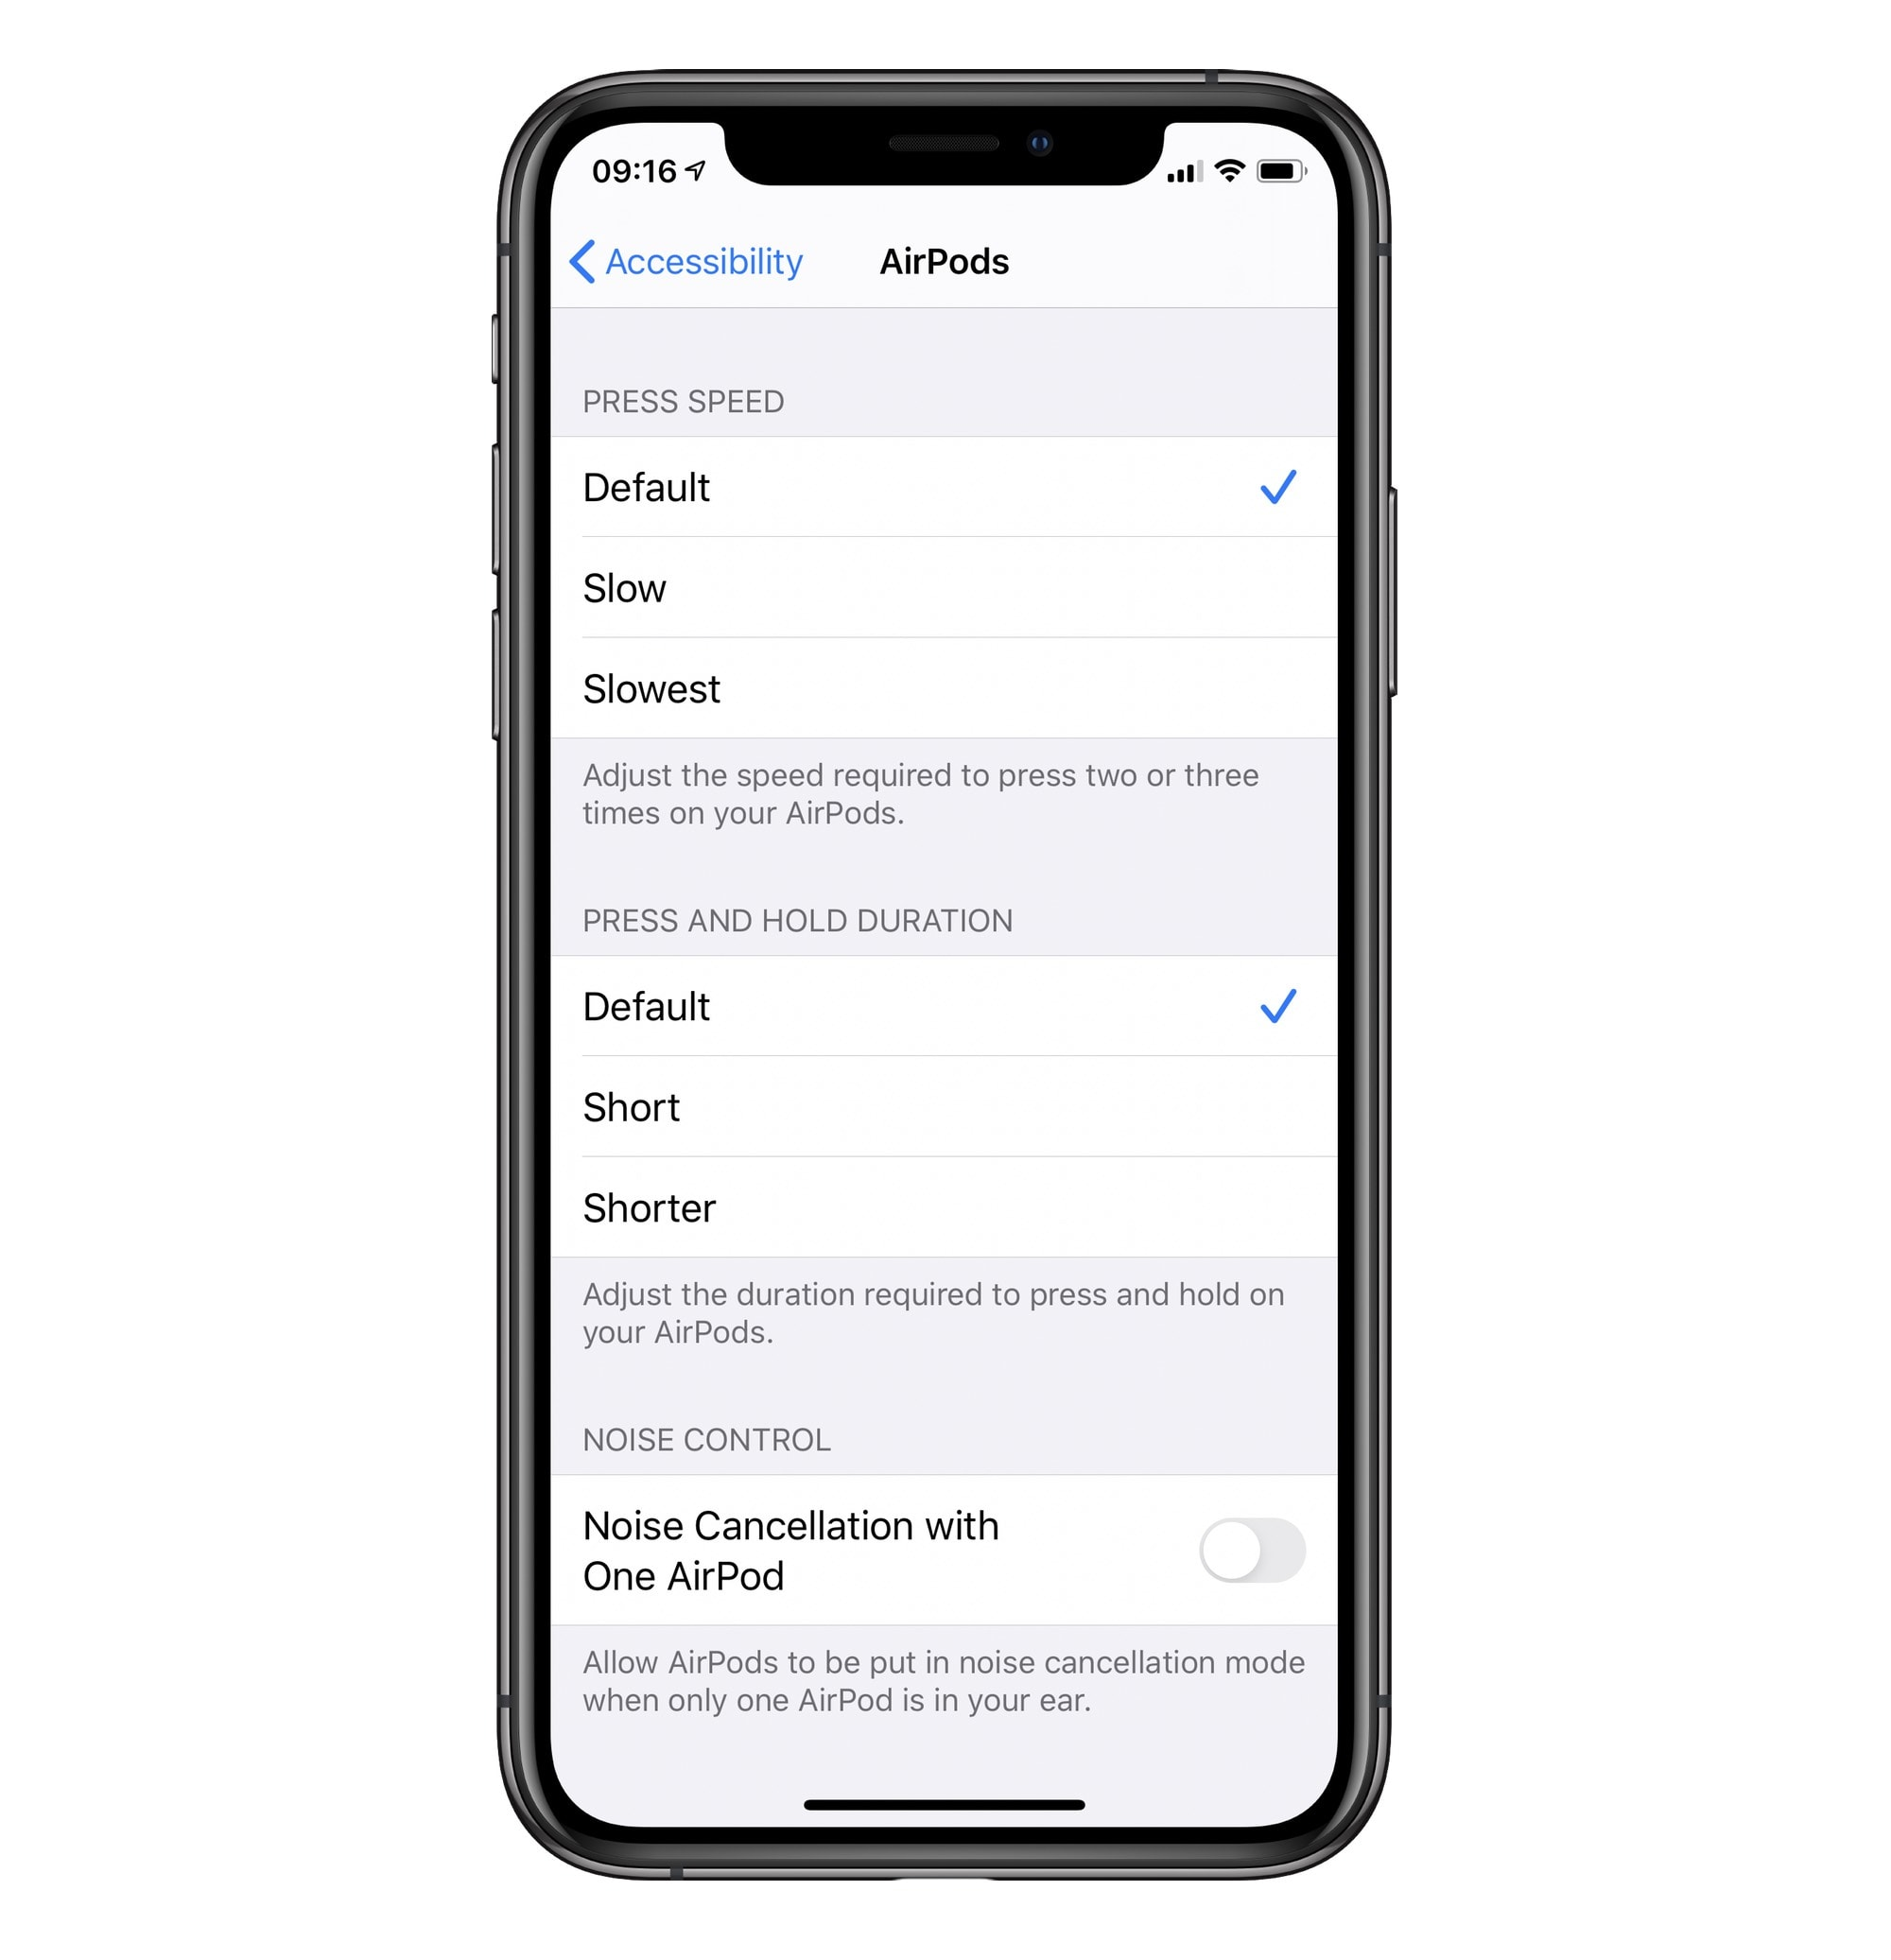 airpods pro controls on iphone